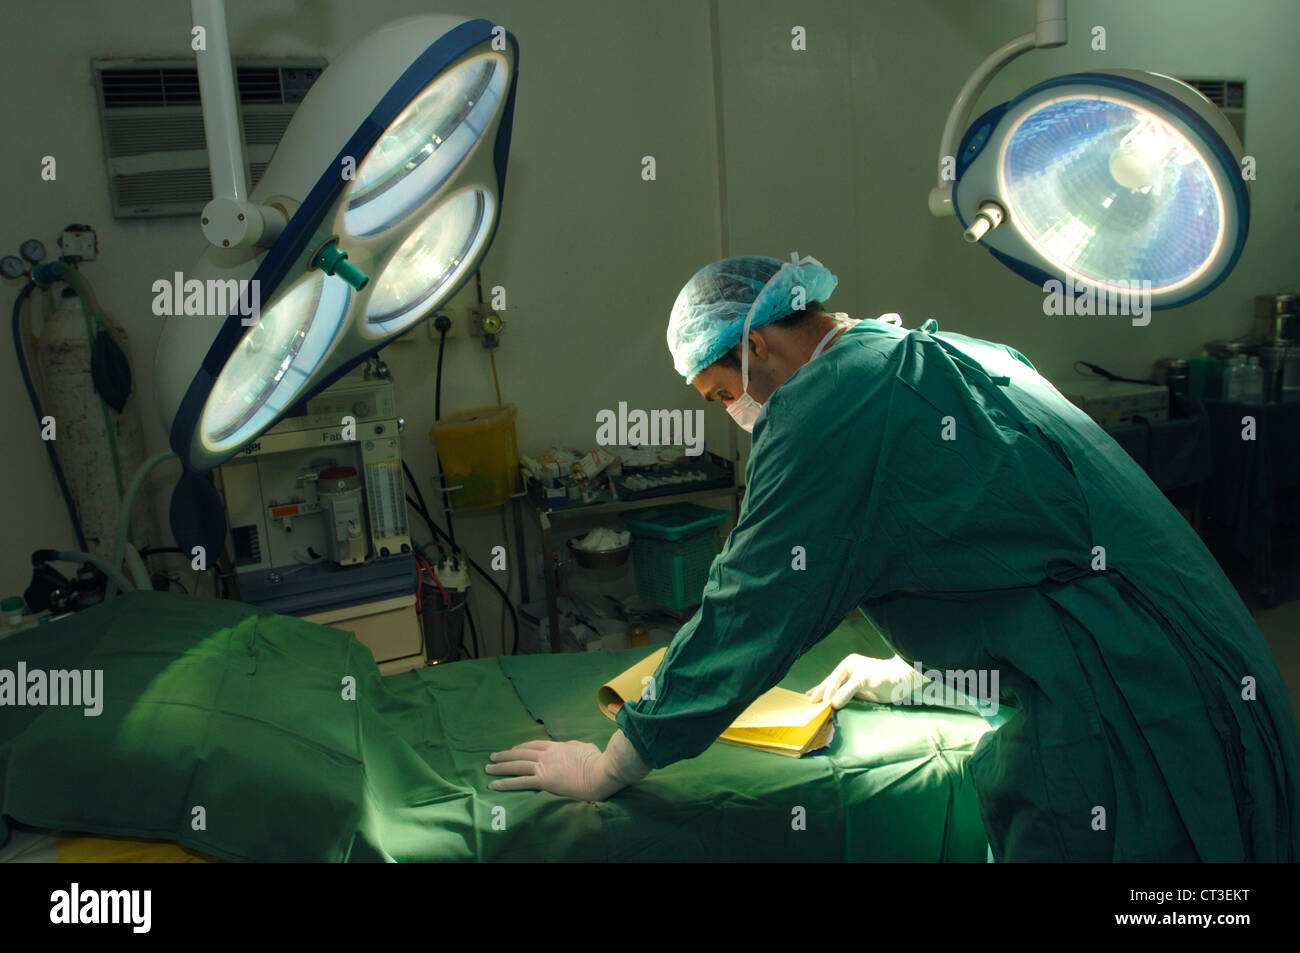 A surgeon looking over patient notes before a procedure. - Stock Image